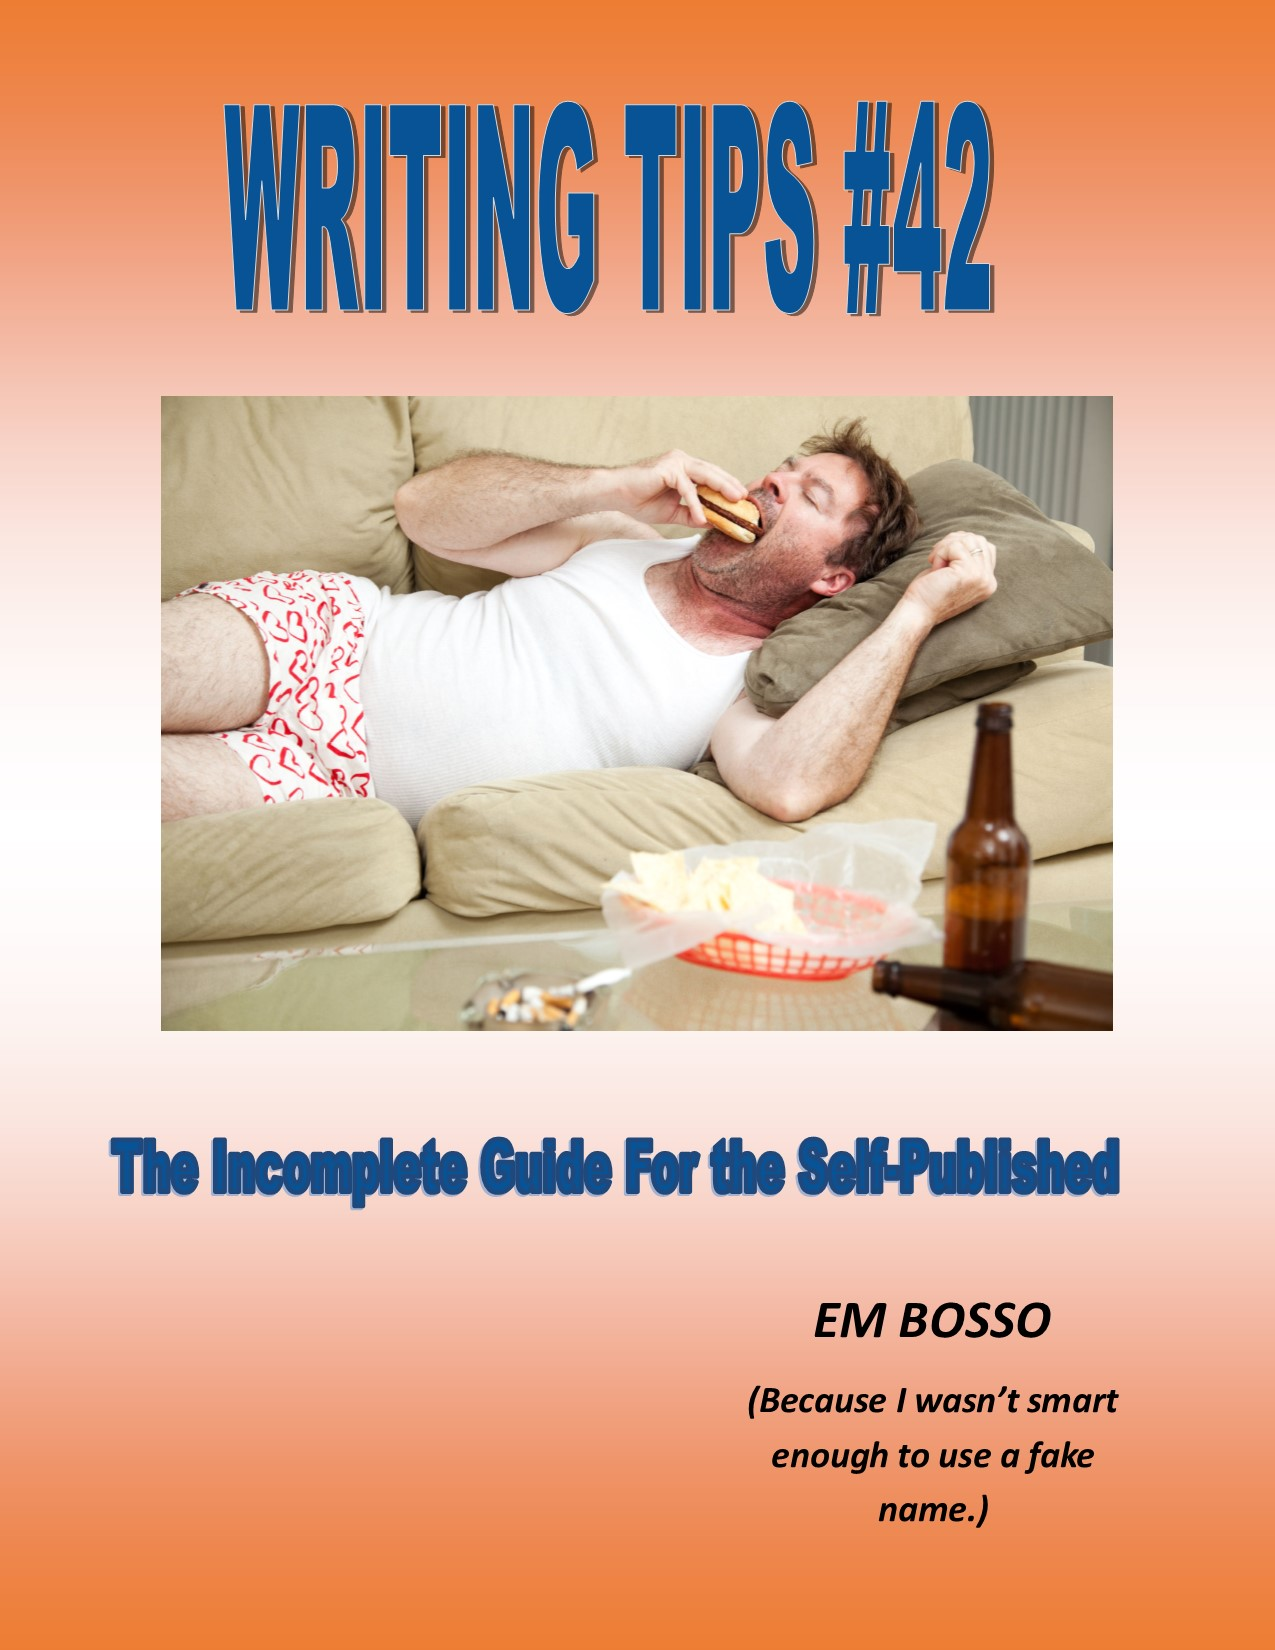 Top 10 Reasons to Buy Writing Tips #42